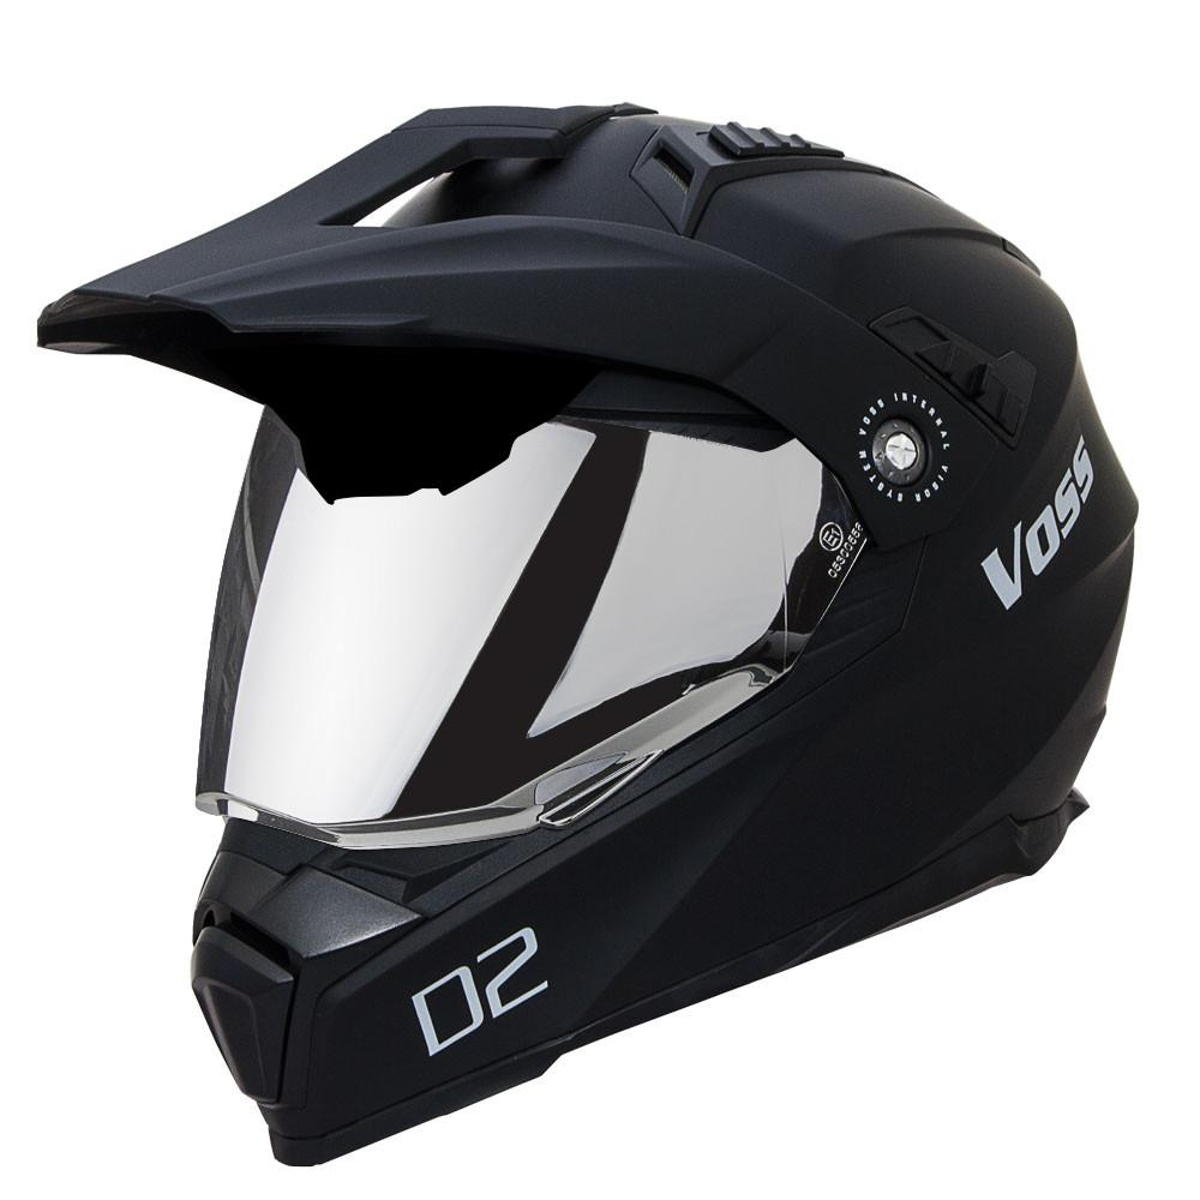 f3c7bc93 Motorcycle Helmet Buyer's Guide | Updated for 2018 | wBW